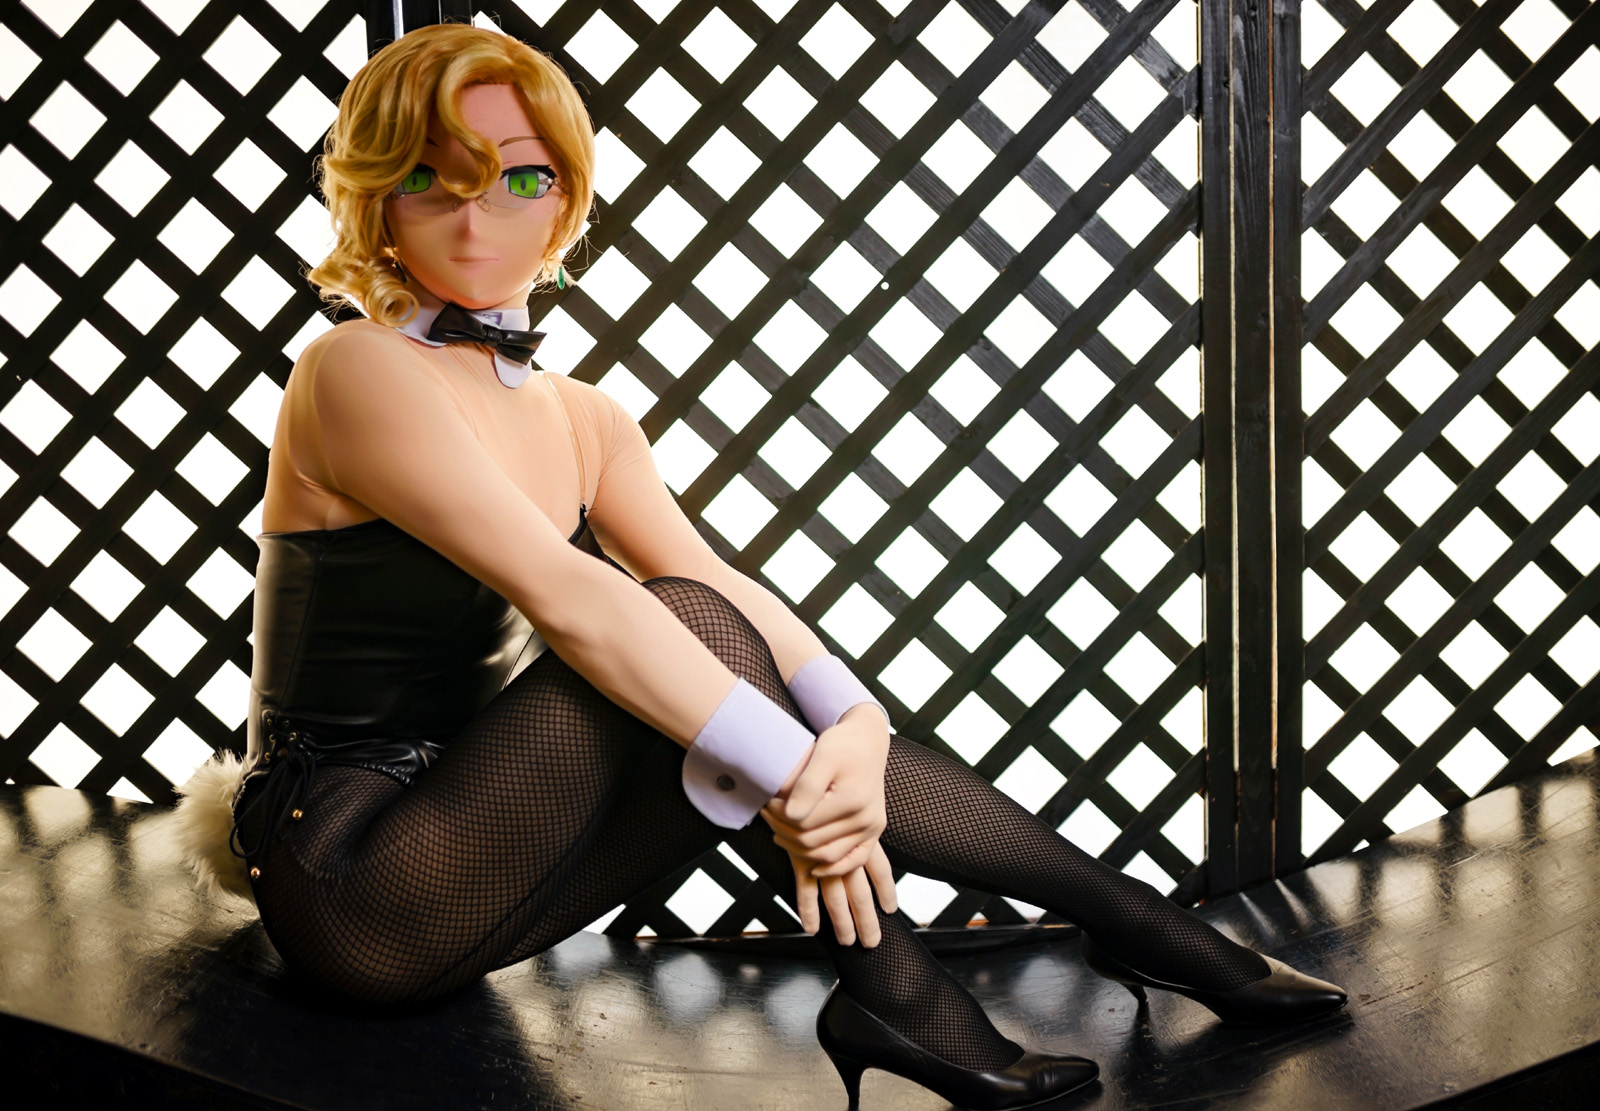 Glynda Goodwitch @RWBY (photo by Tunosk)